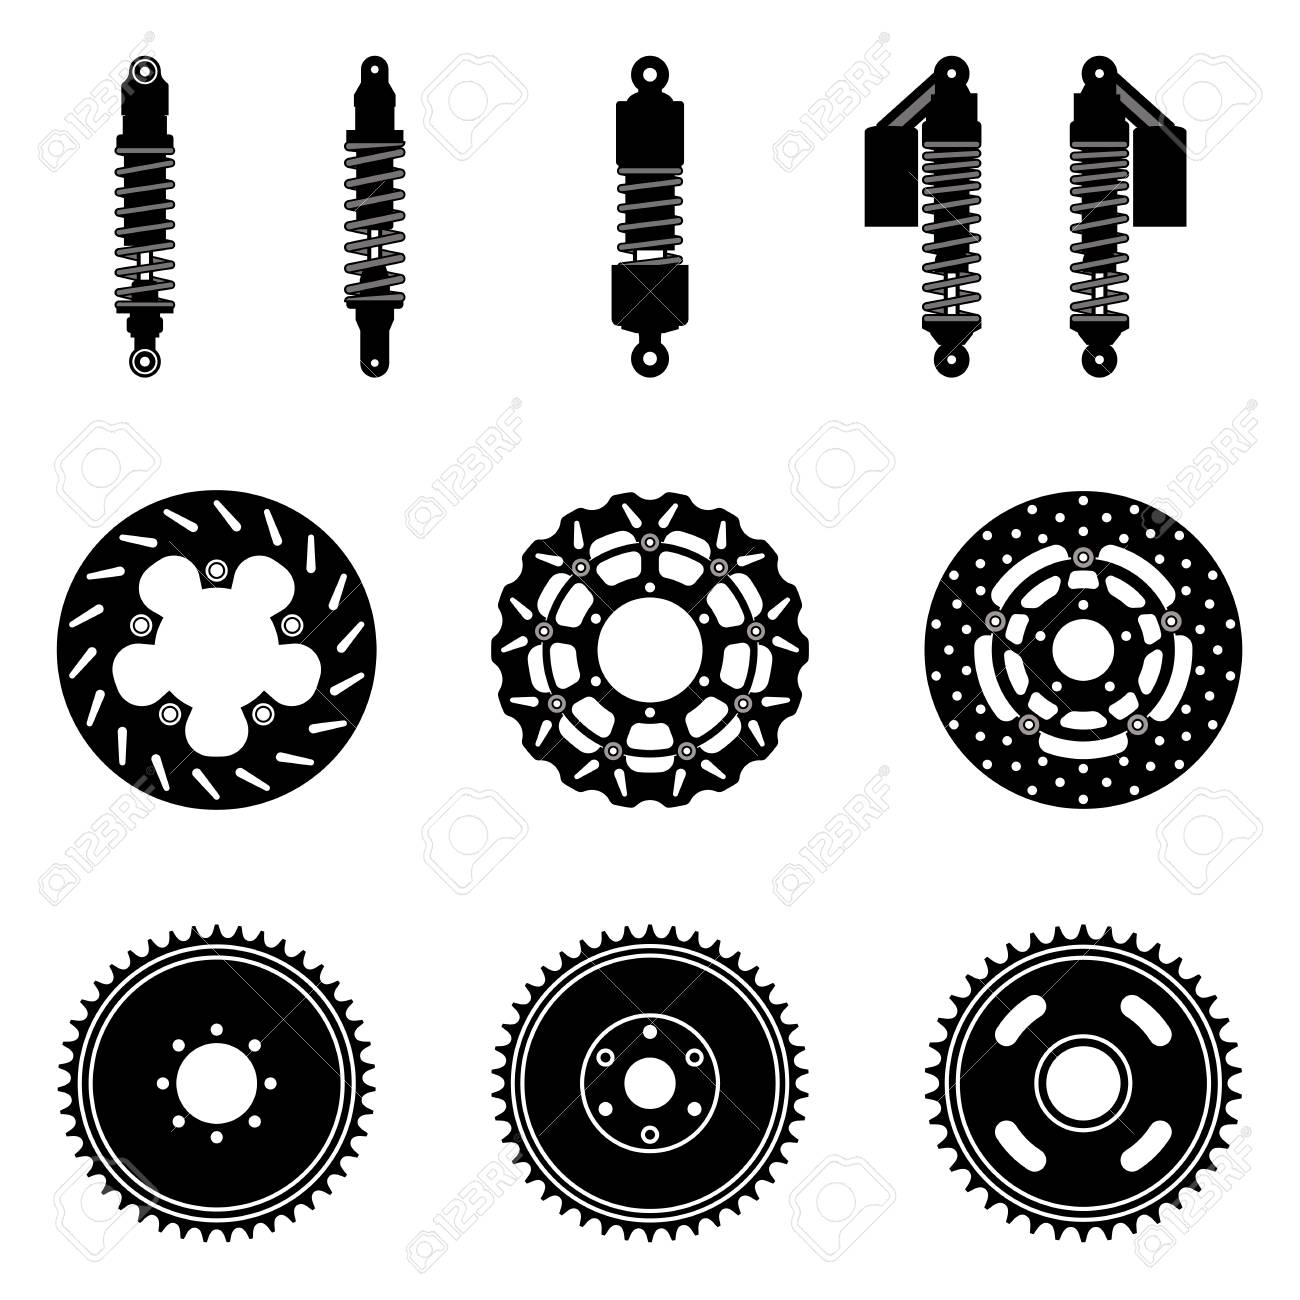 Motorcycle Parts Suspension And Brake Silhouette Vector